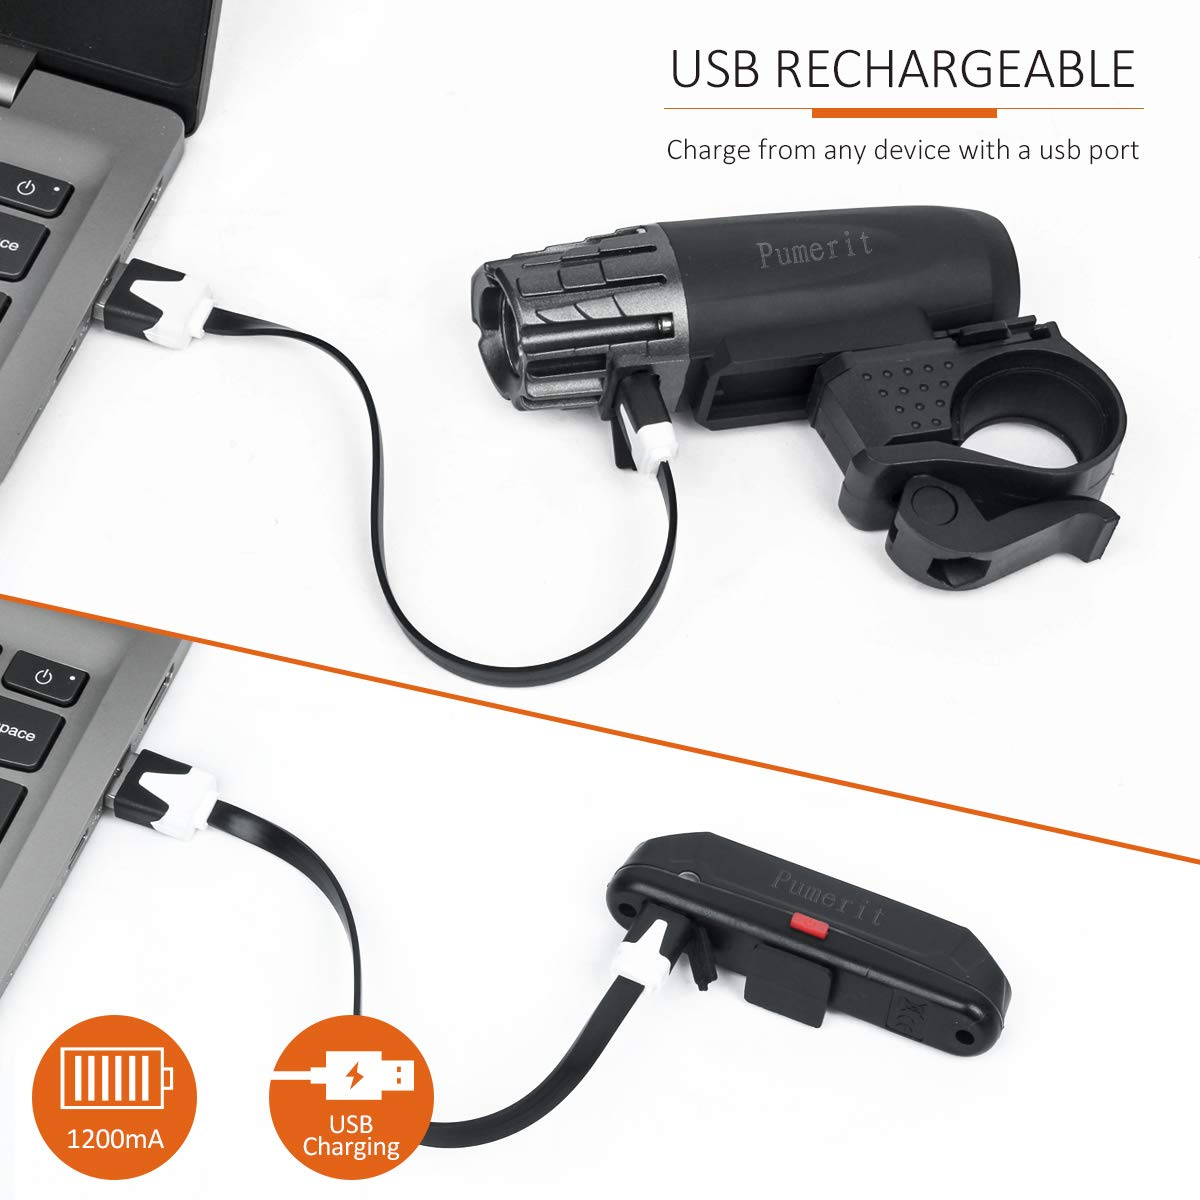 Bonnevie USB Rechargeable Bike Light Set,1500mA Powerful Waterproof Mountain Bicycle Headlight and Taillight Set Super Bright Front Light and Rear Light for Cycling Safety by Bonnevie (Image #3)